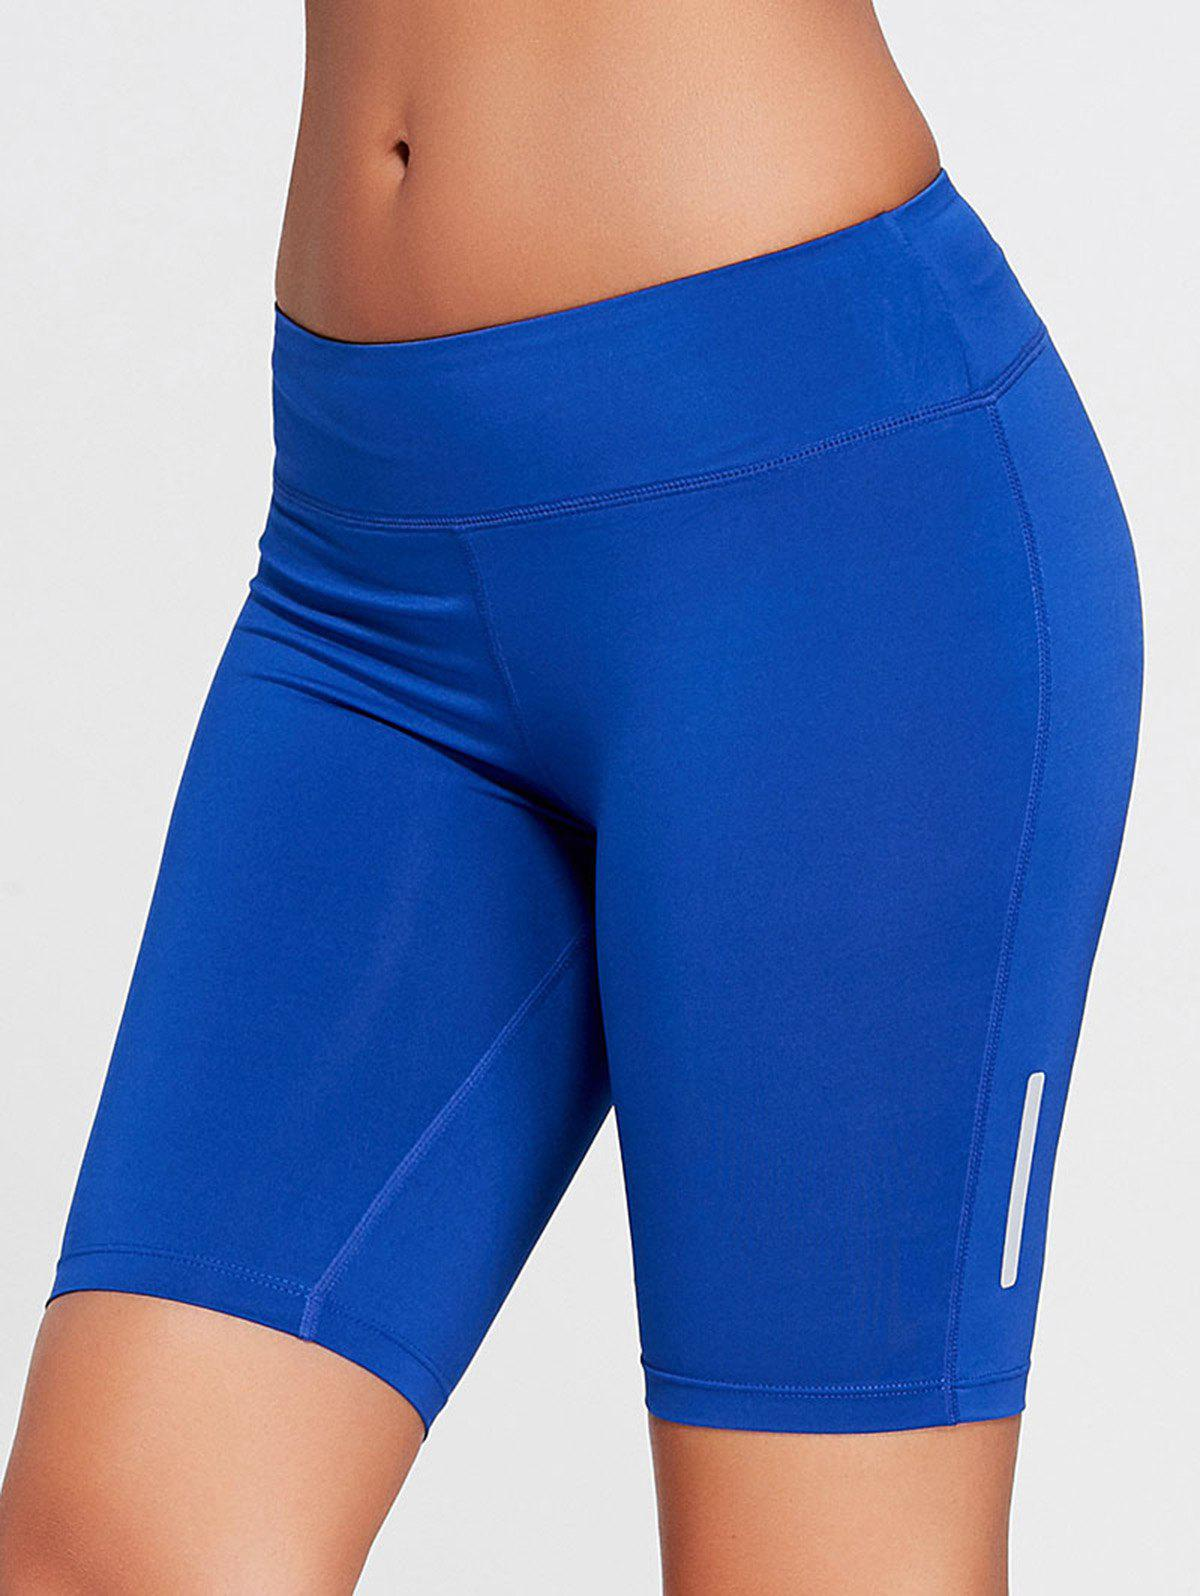 Stretch Tight Running Shorts - BLUE L